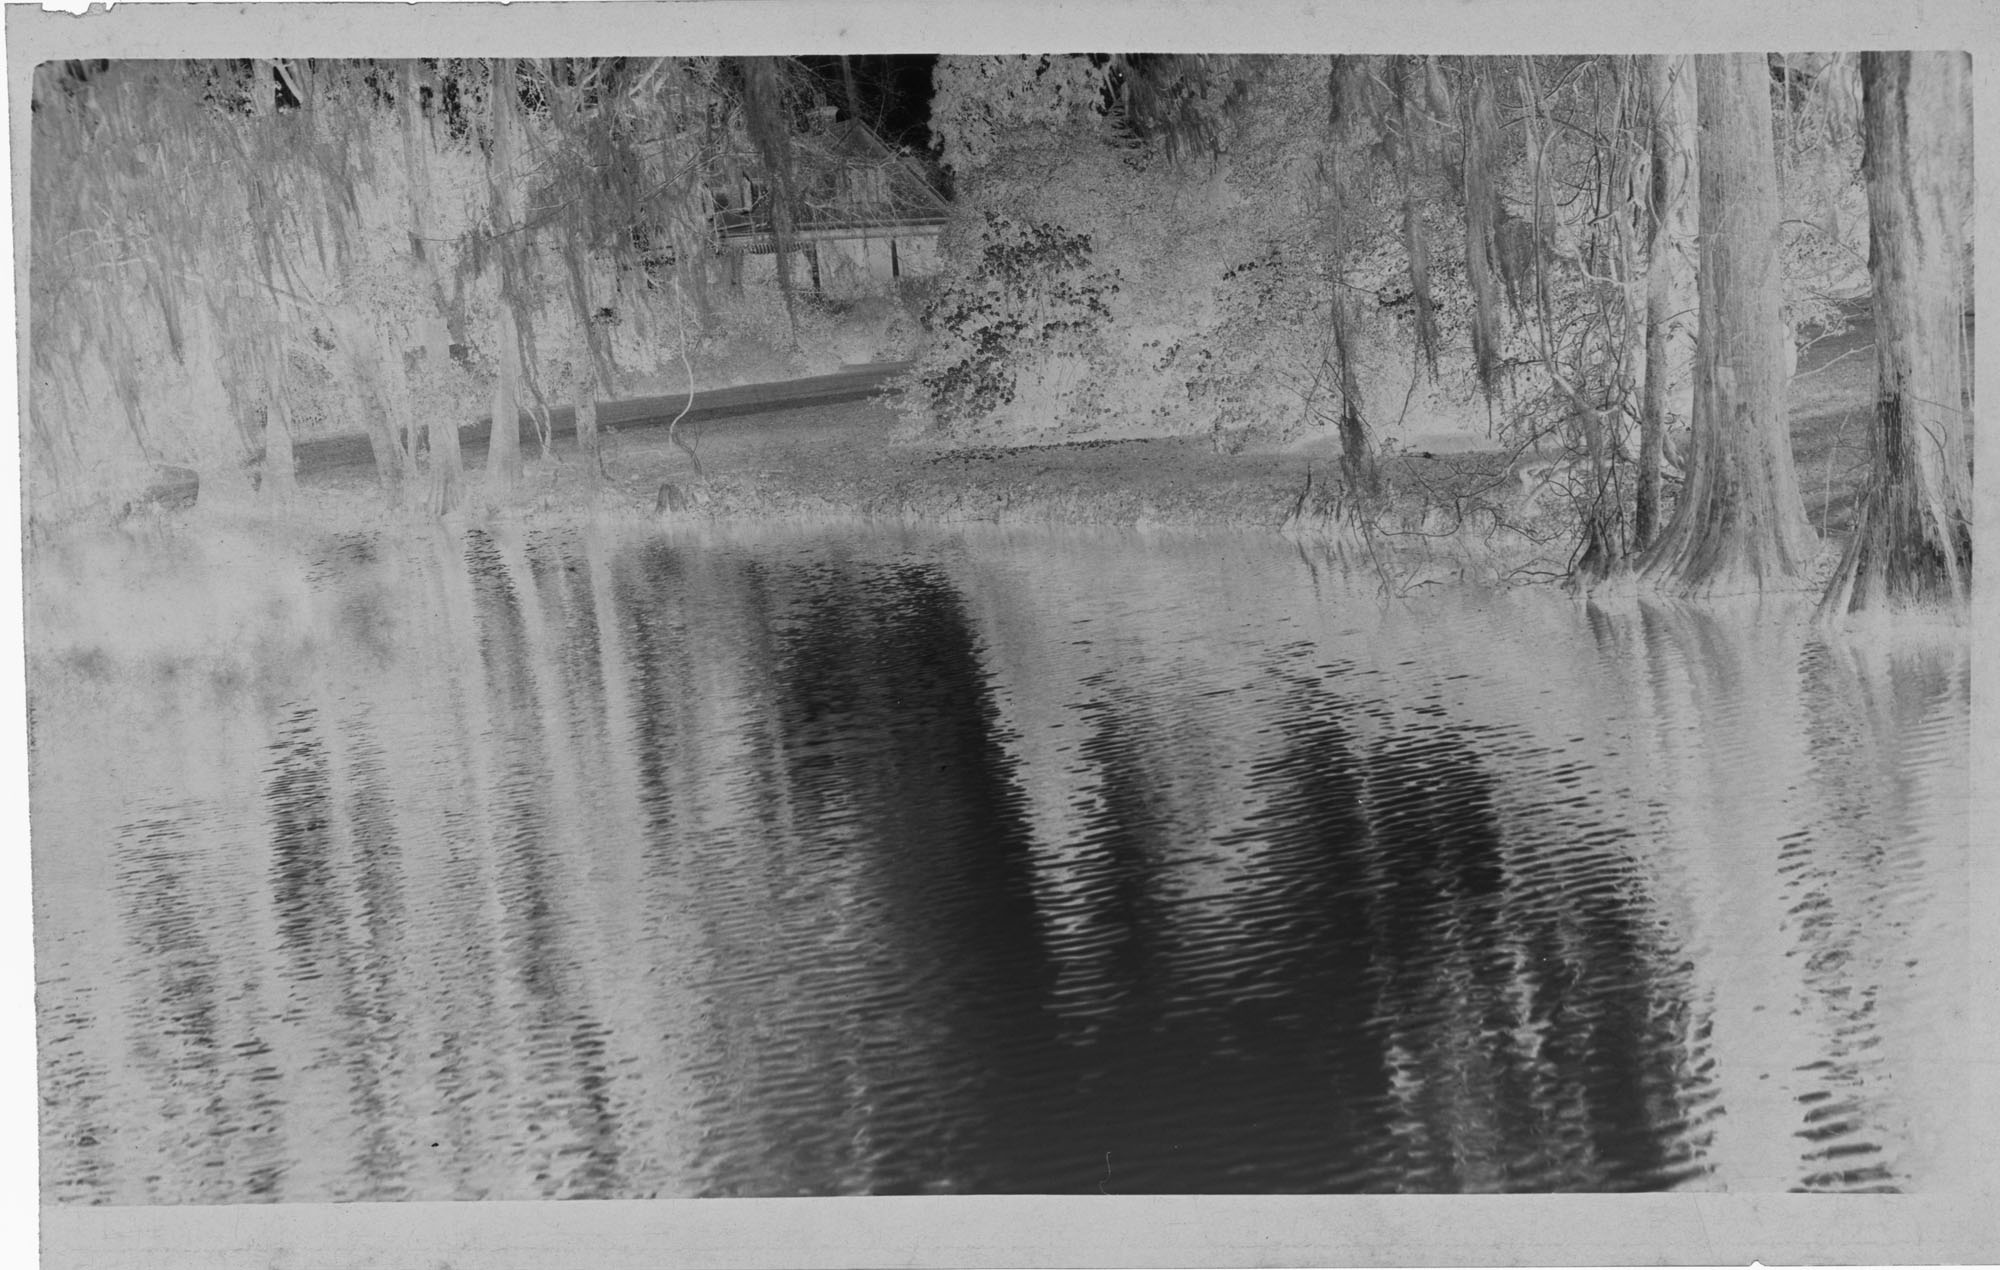 Negative of House on Magnolia Plantation